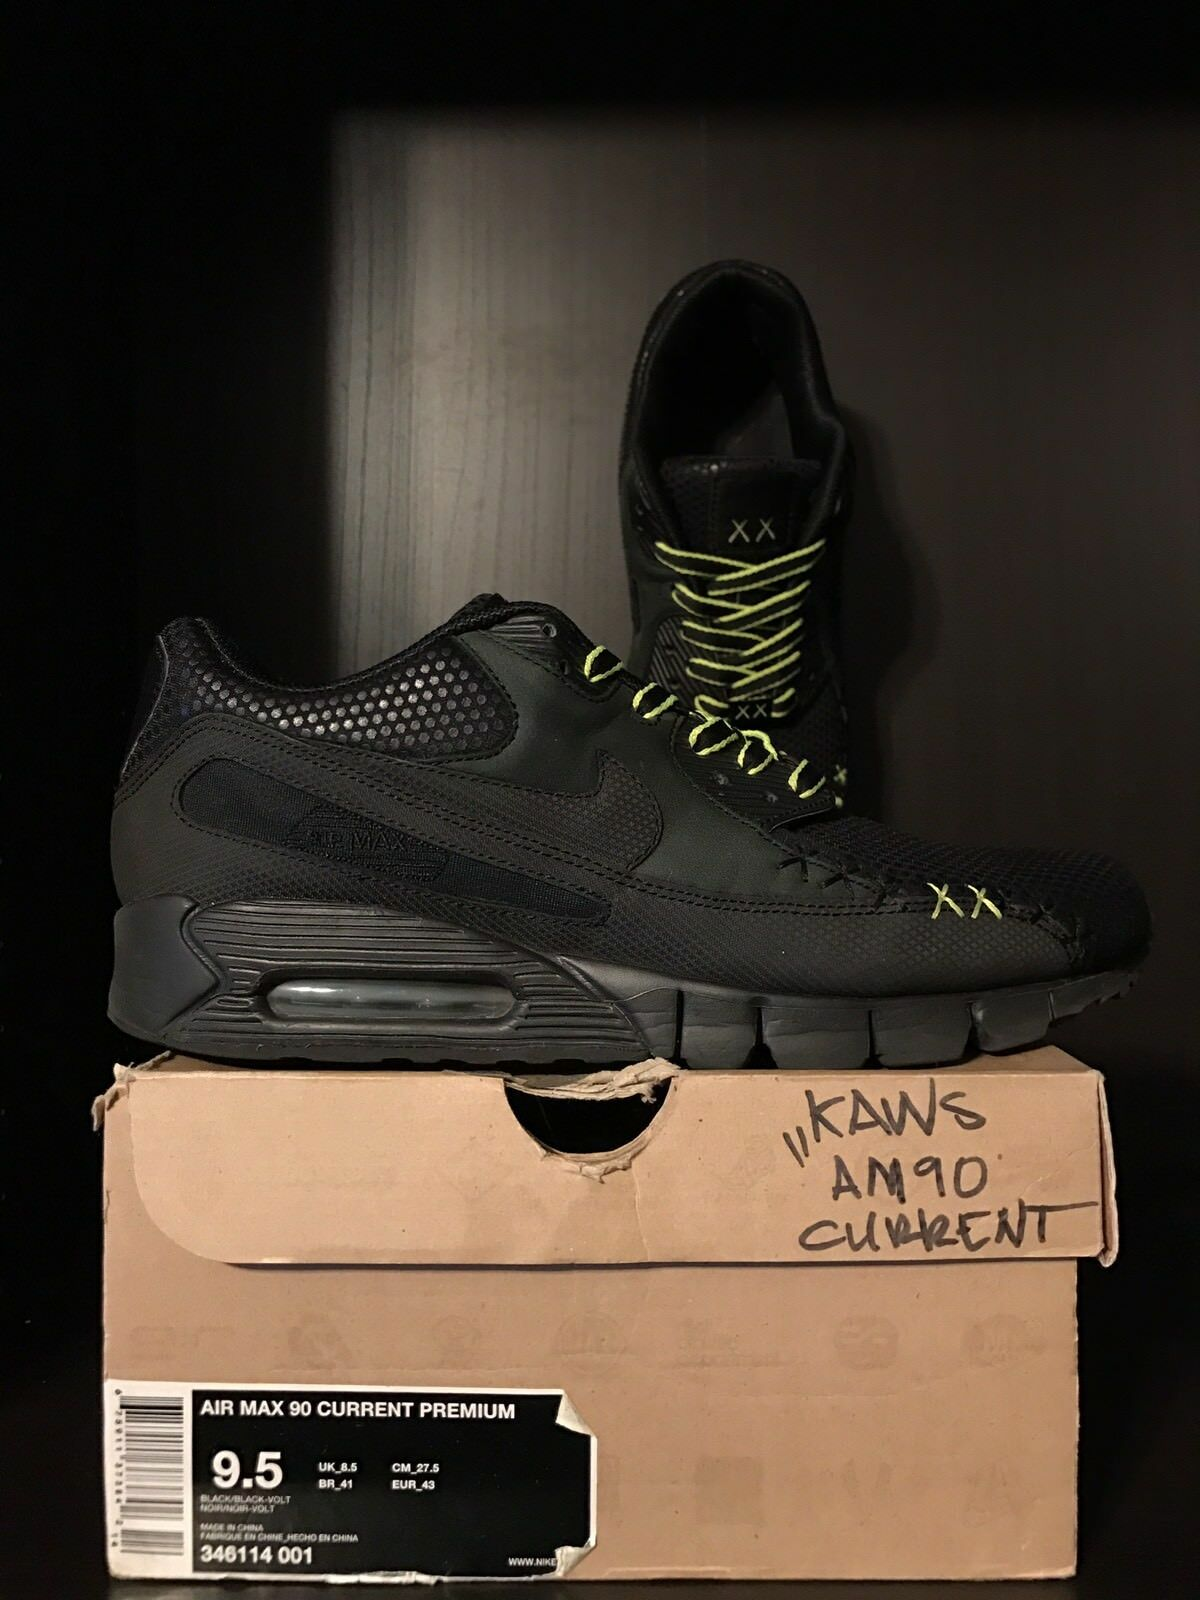 2018 Kaws x Nike Air Max 90 Current Premium  - Size 9.5 - RARE!!